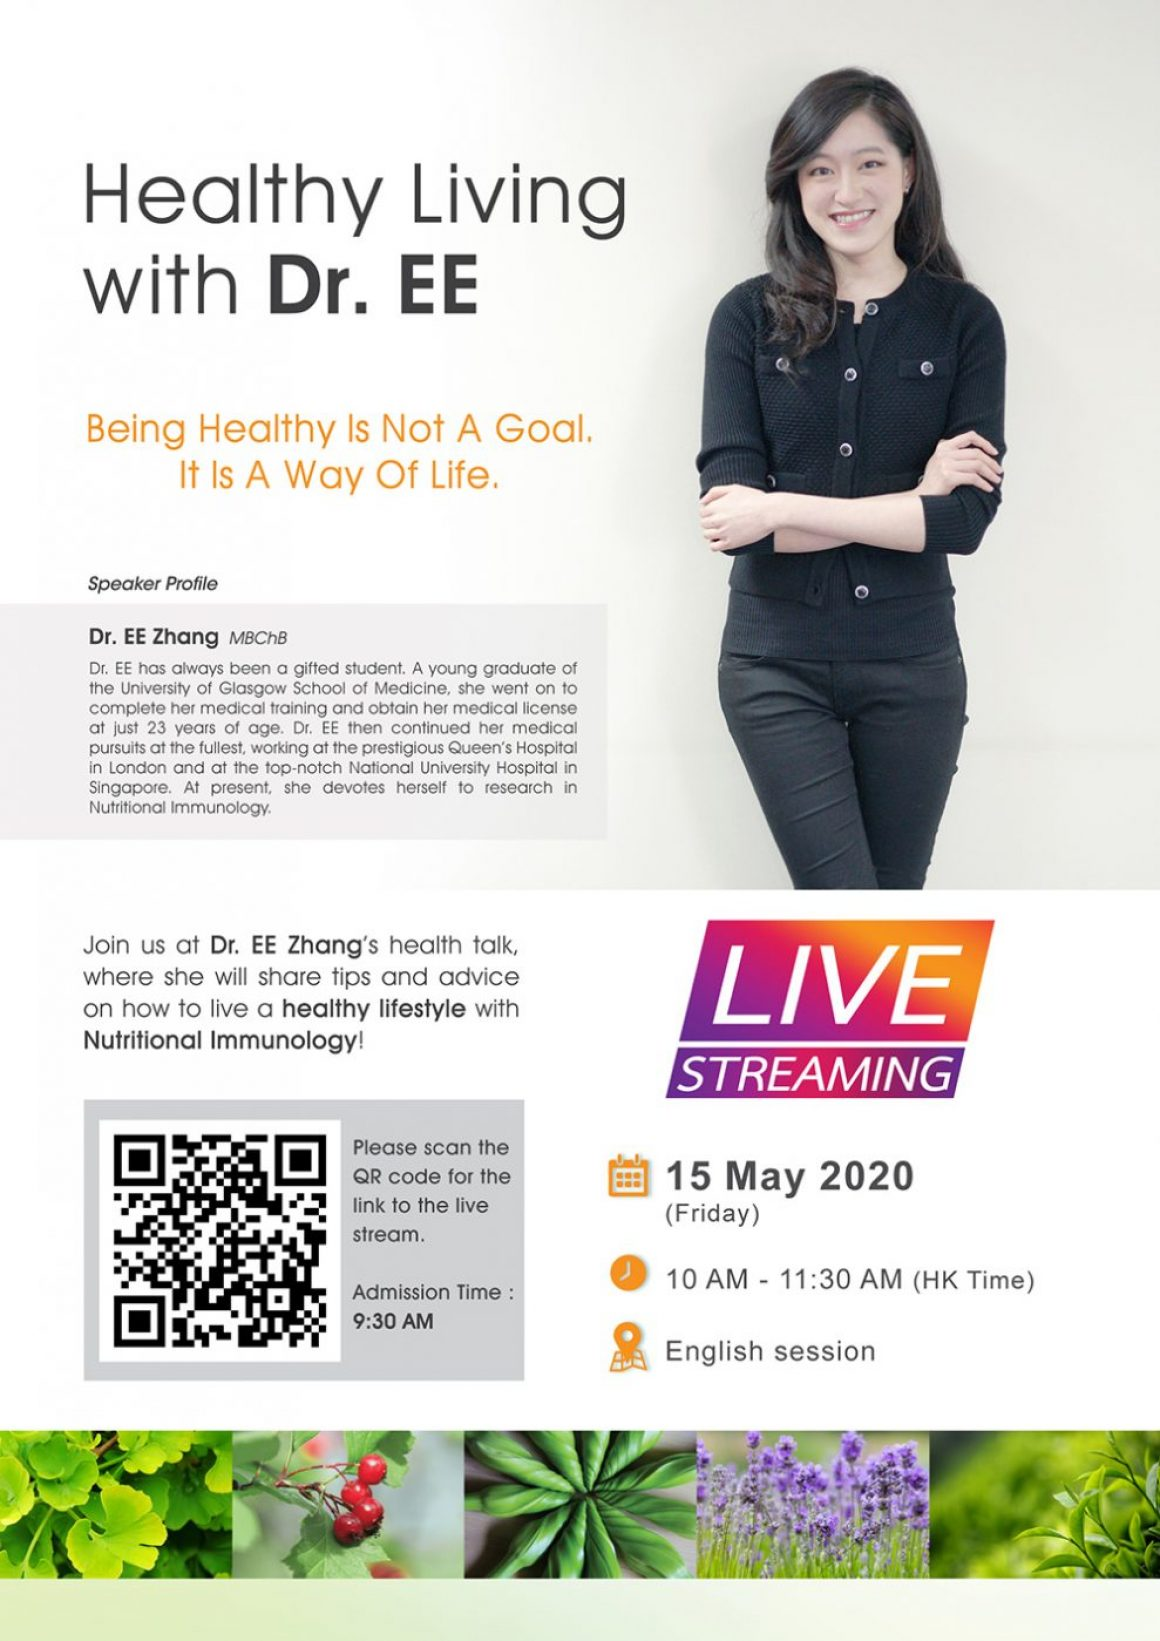 Healthy-living-with-Dr.EE_1